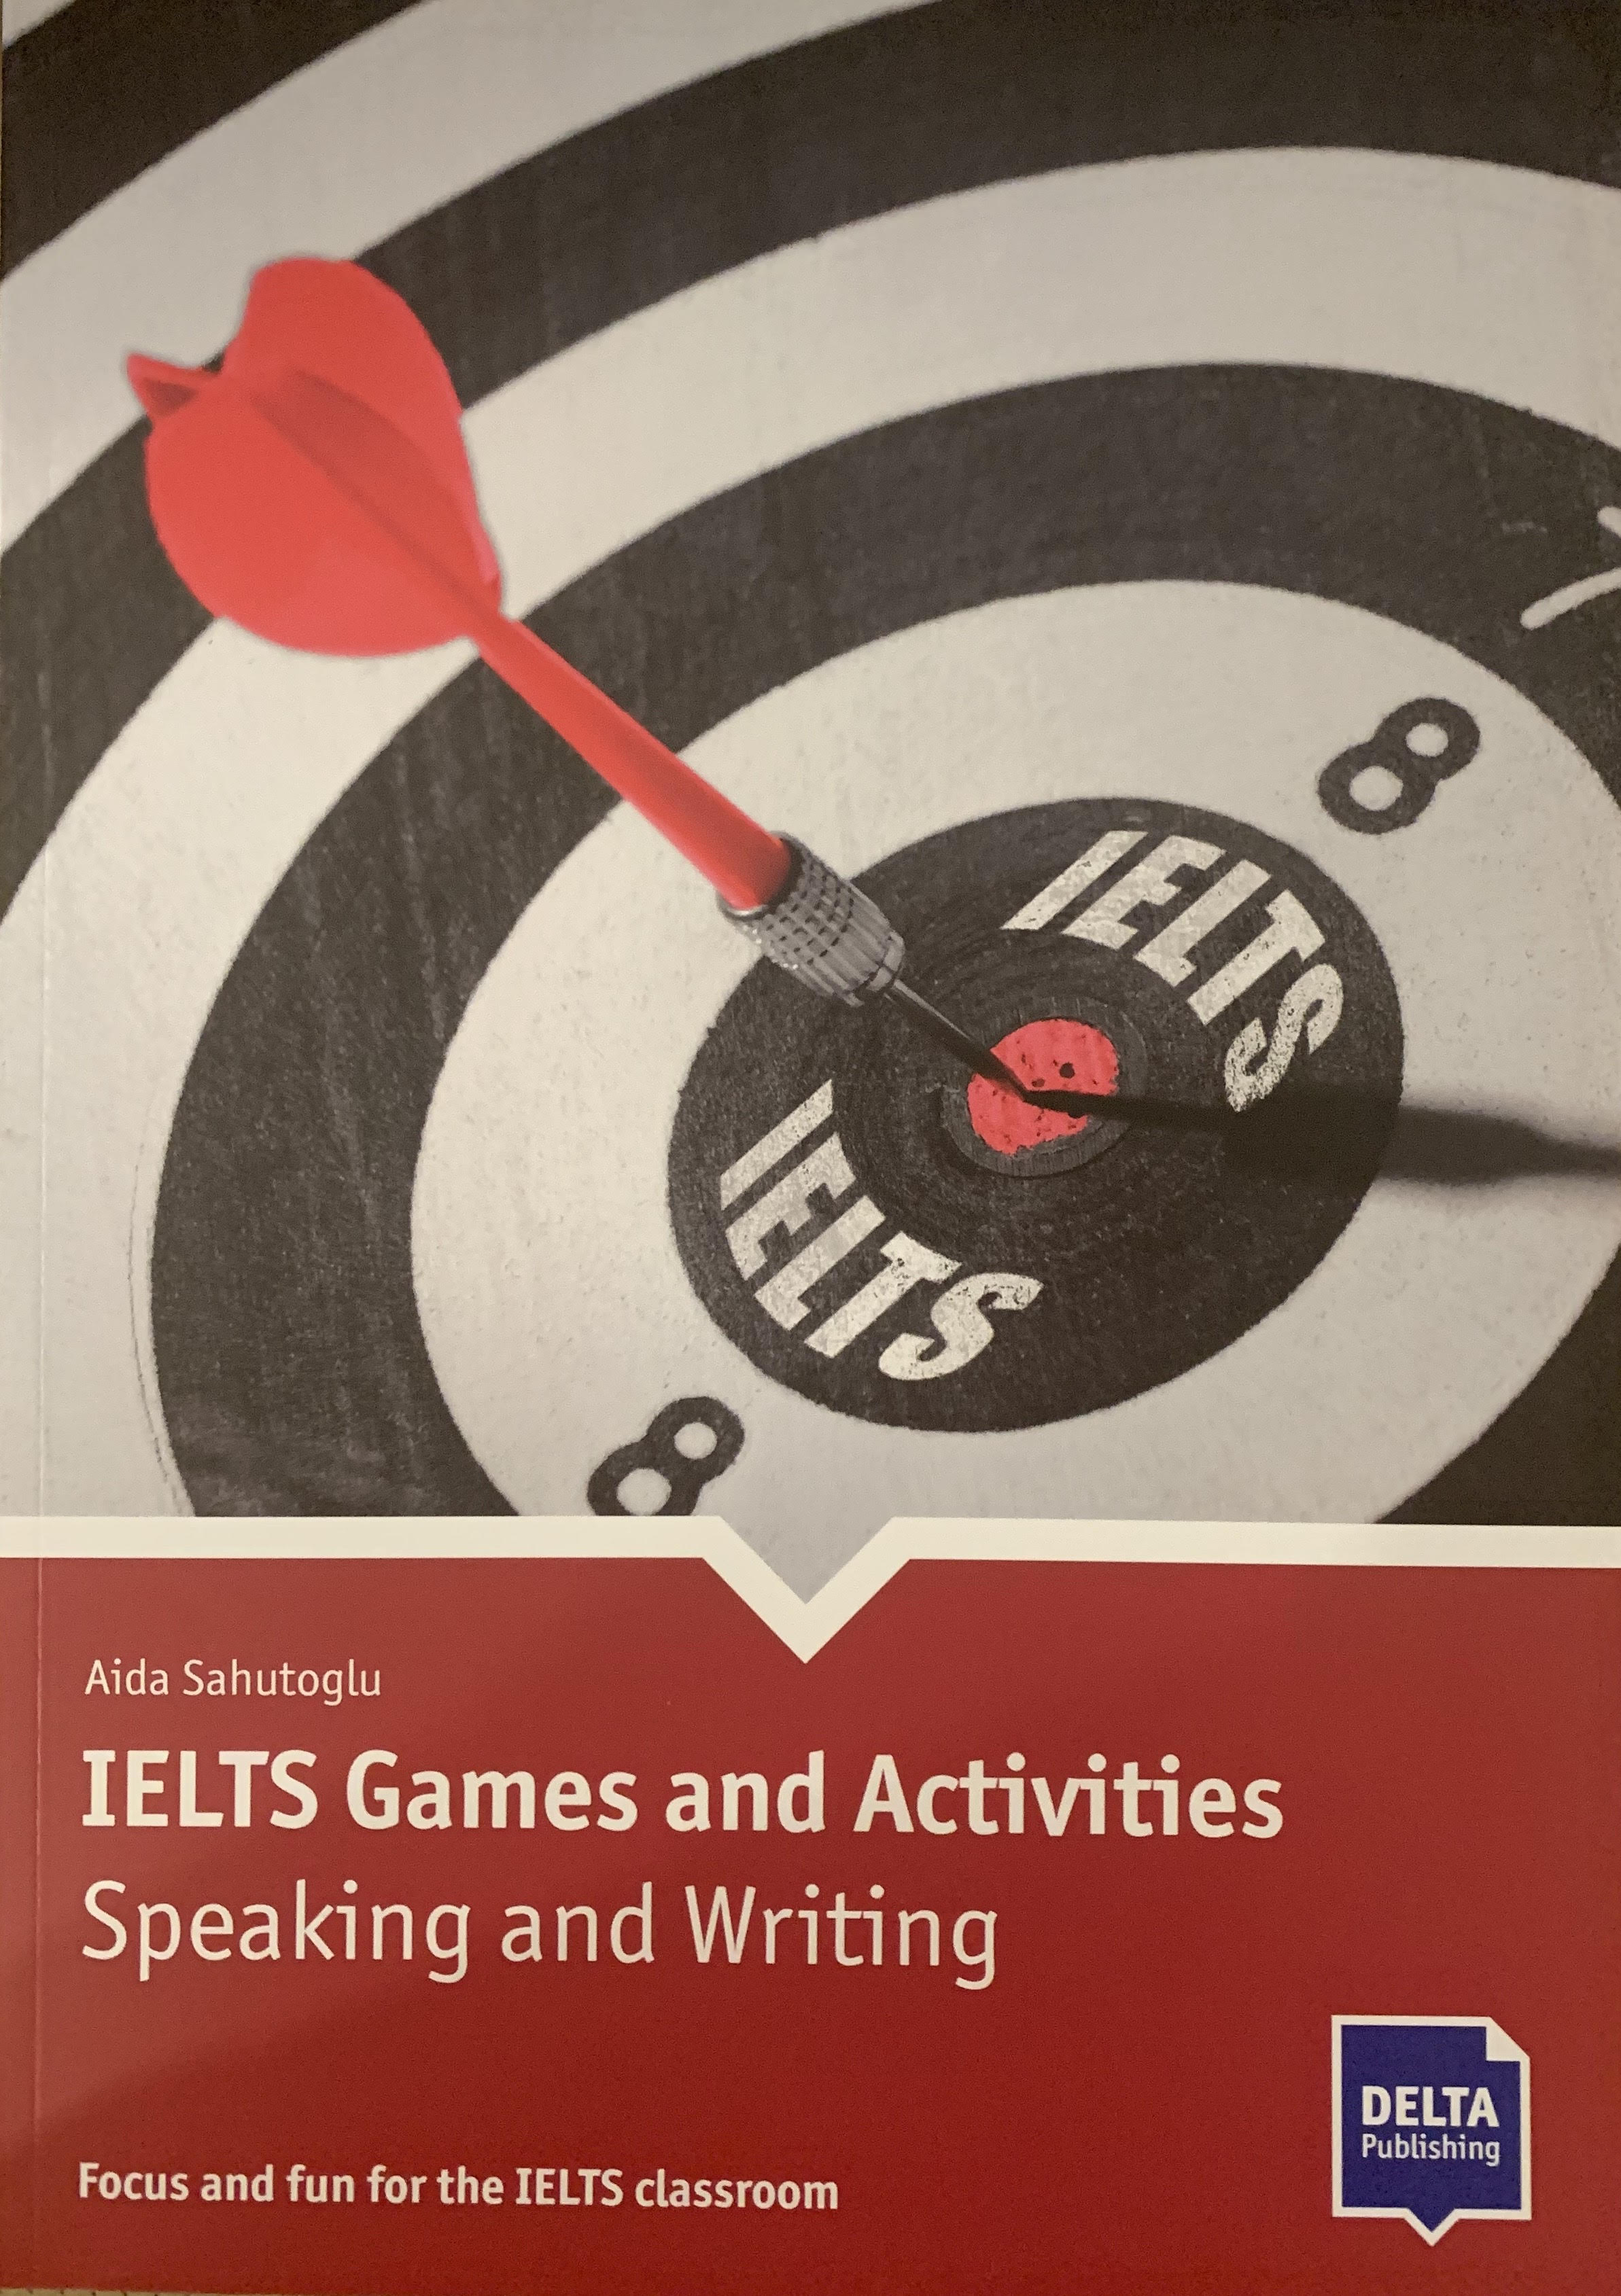 IELTS GAMES and Activities Speaking and Writing